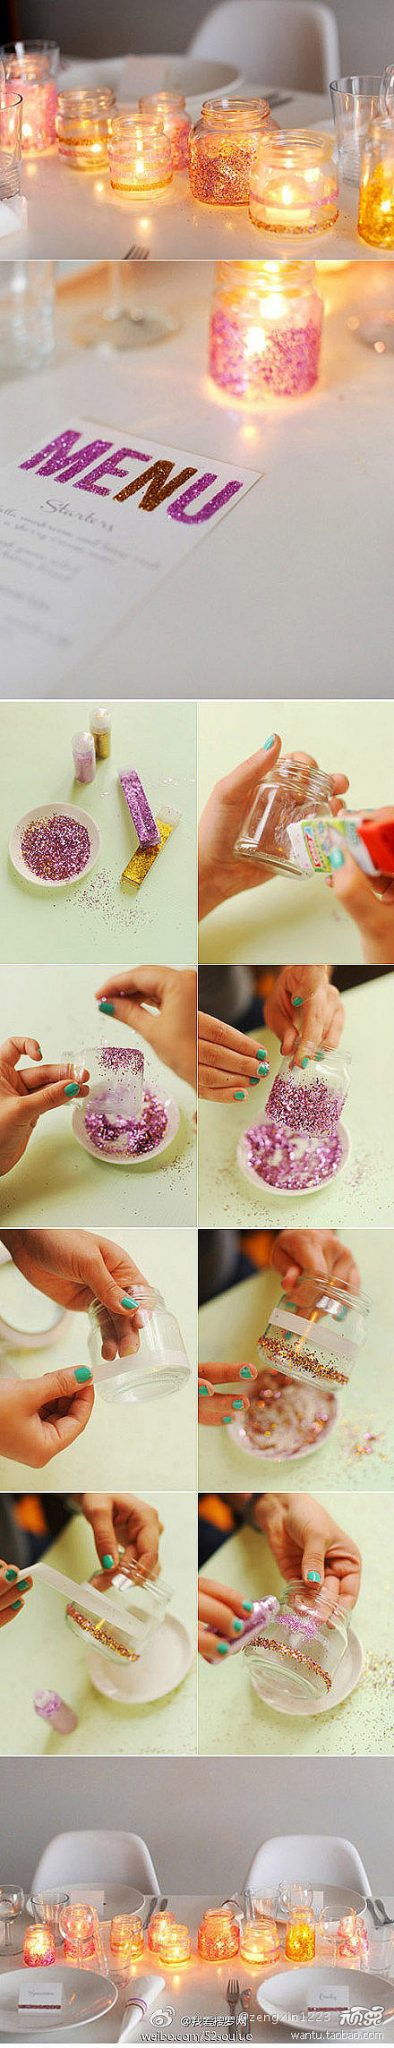 DIY Glitter Candles Ideas